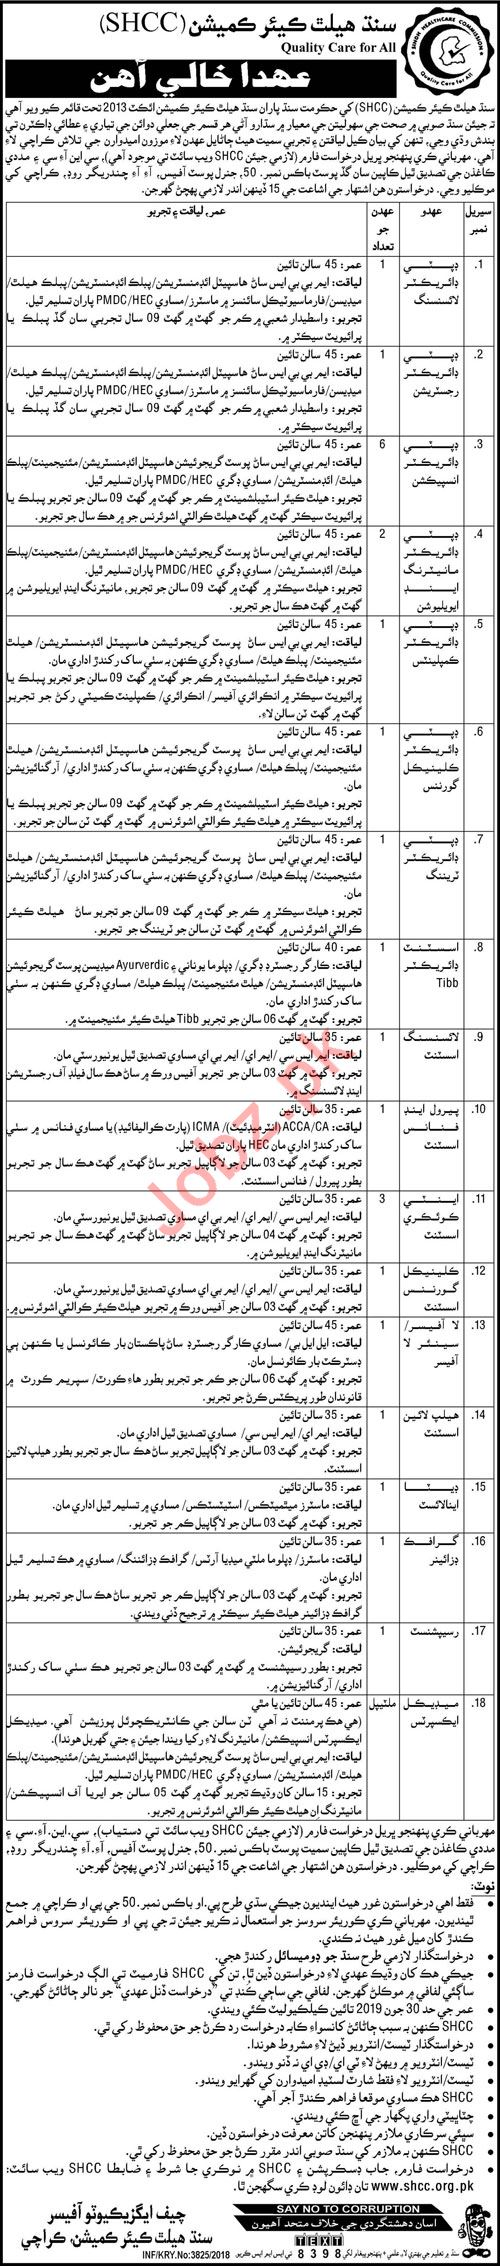 PPHI Sindh Jobs 2018 for Directors & Deputy Director